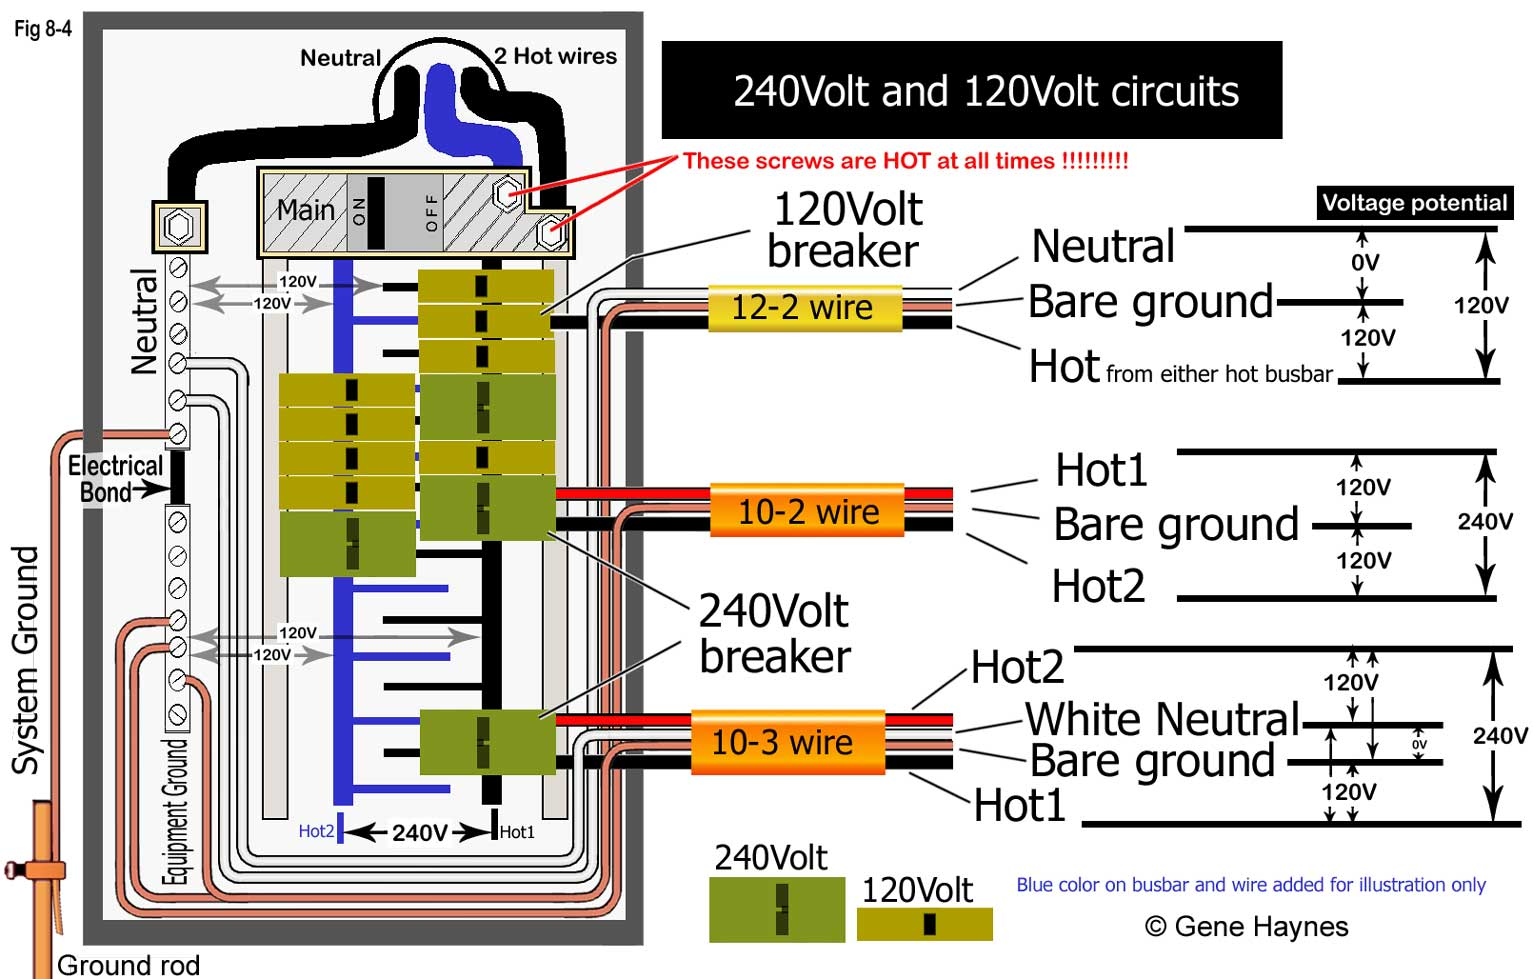 240 single phase wiring diagram for panelboard images gallery